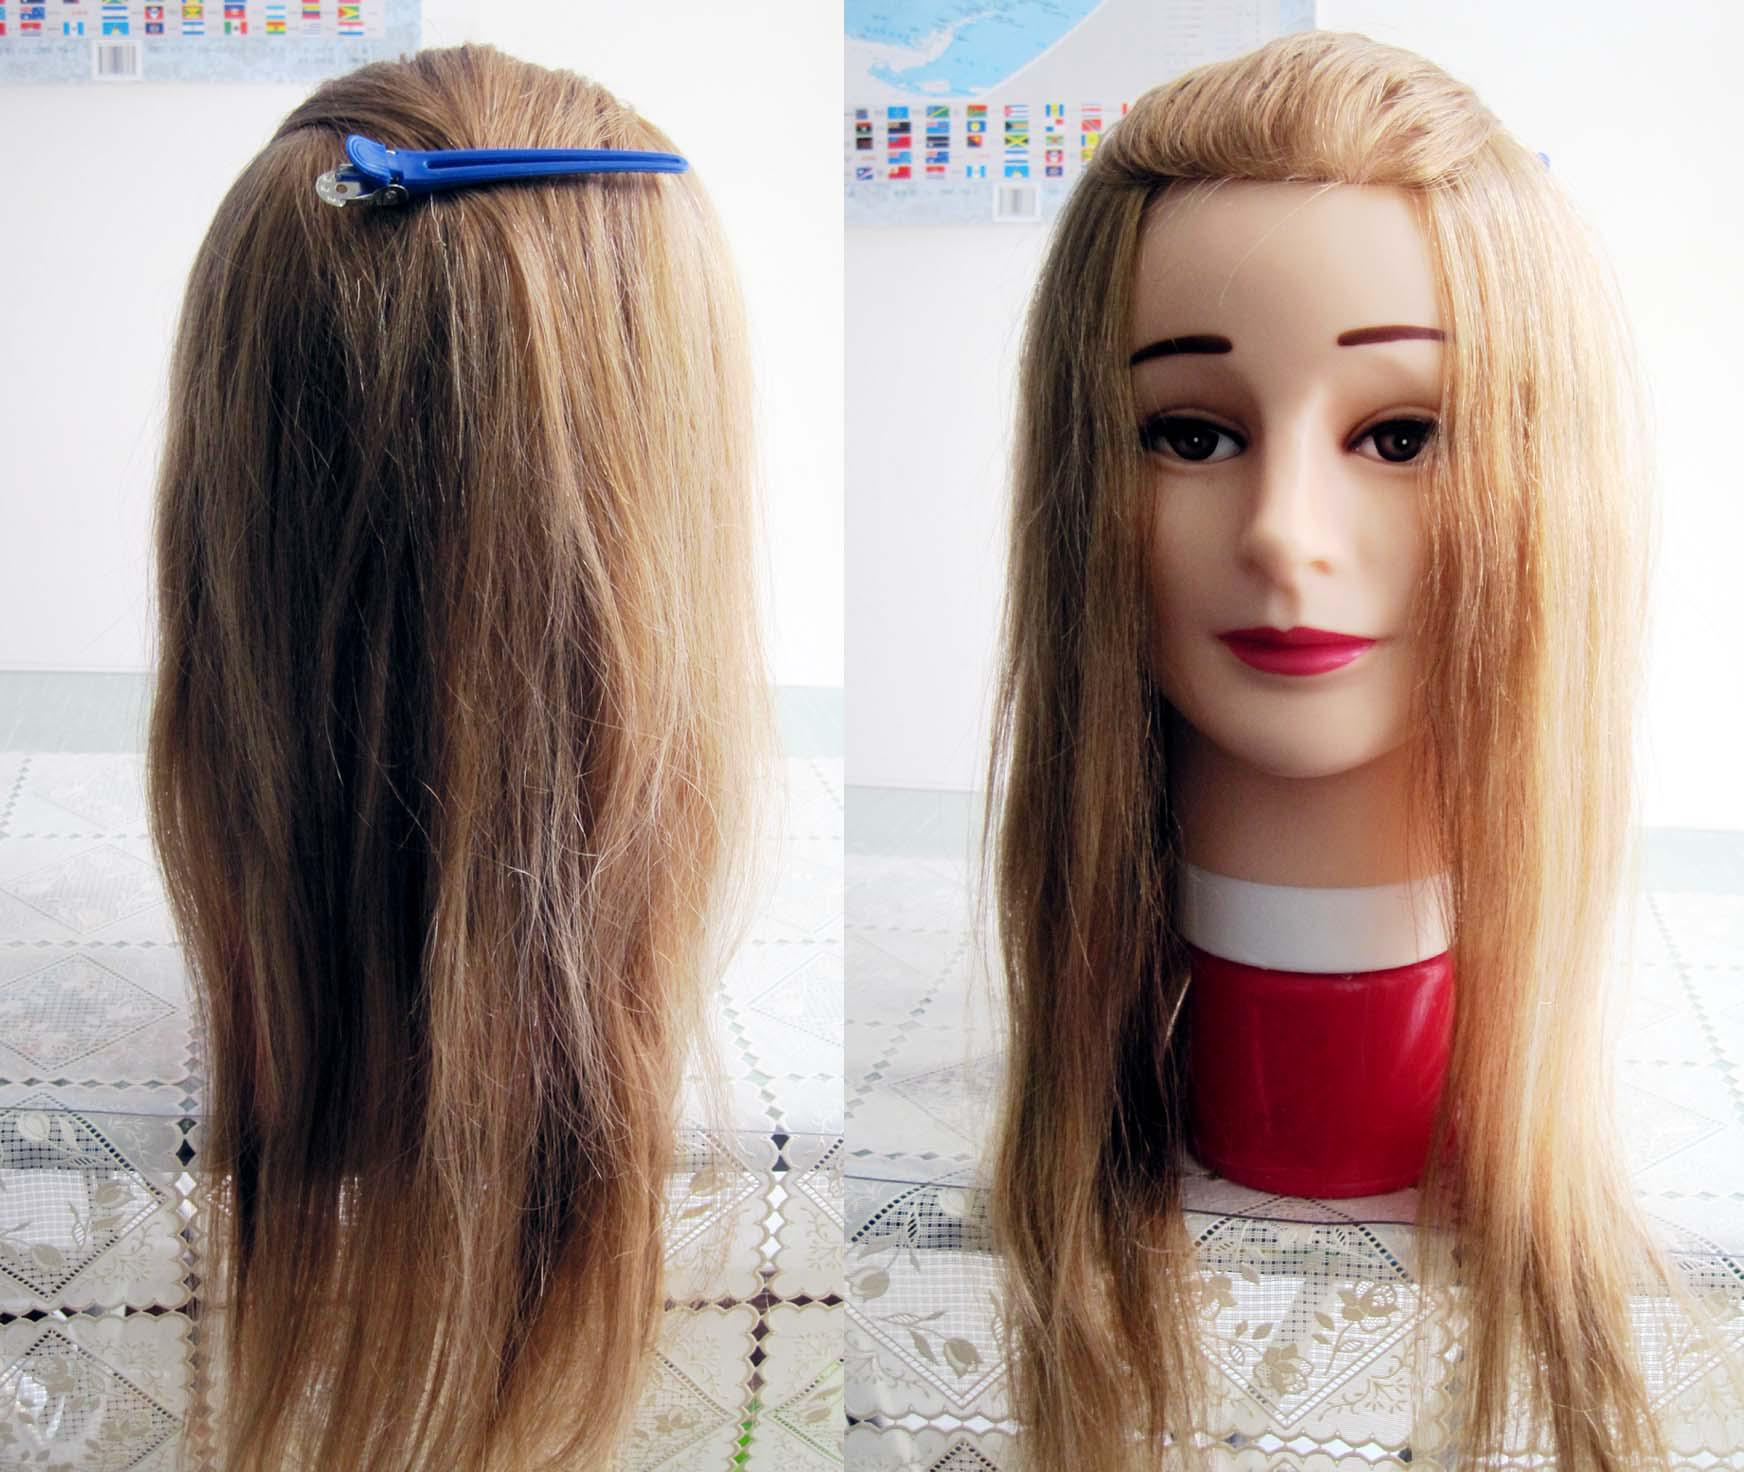 human hair styling best 16 26 cosmetology mannequin 100 human hair 3100